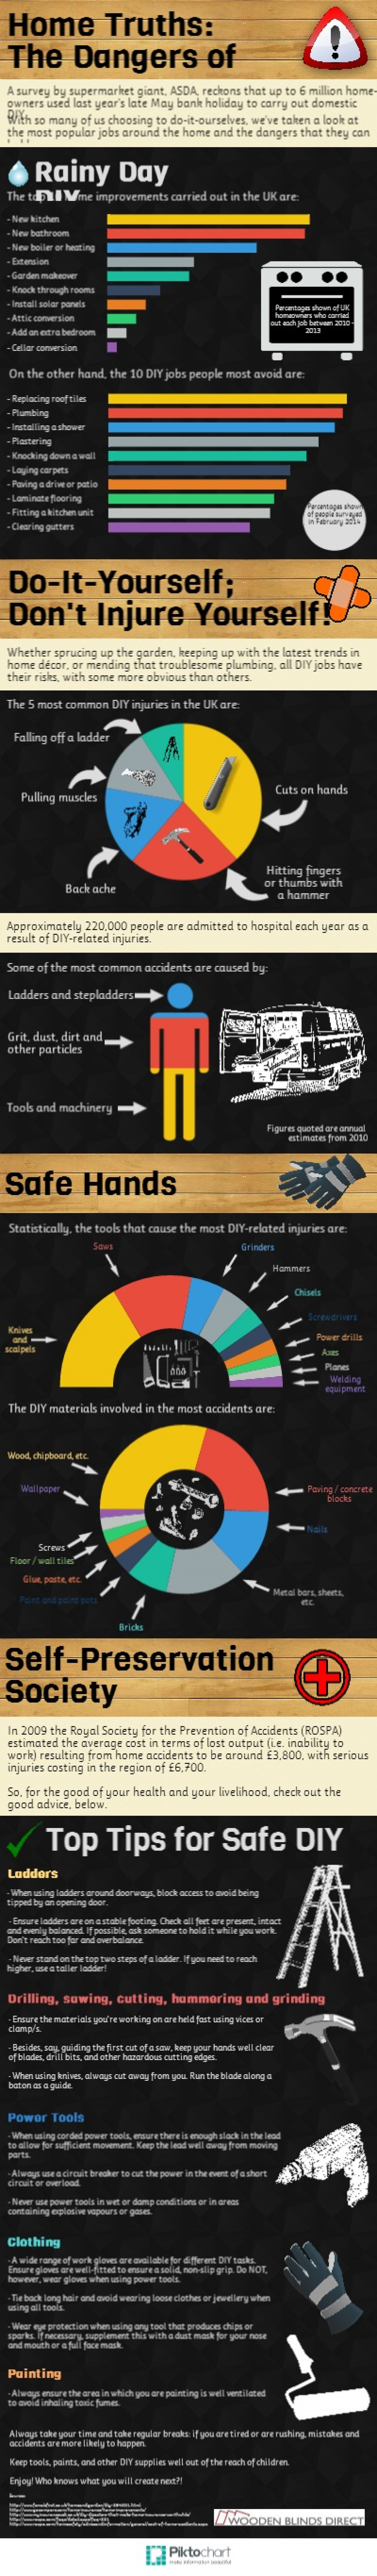 Home Truths: The Dangers of DIY Infographic